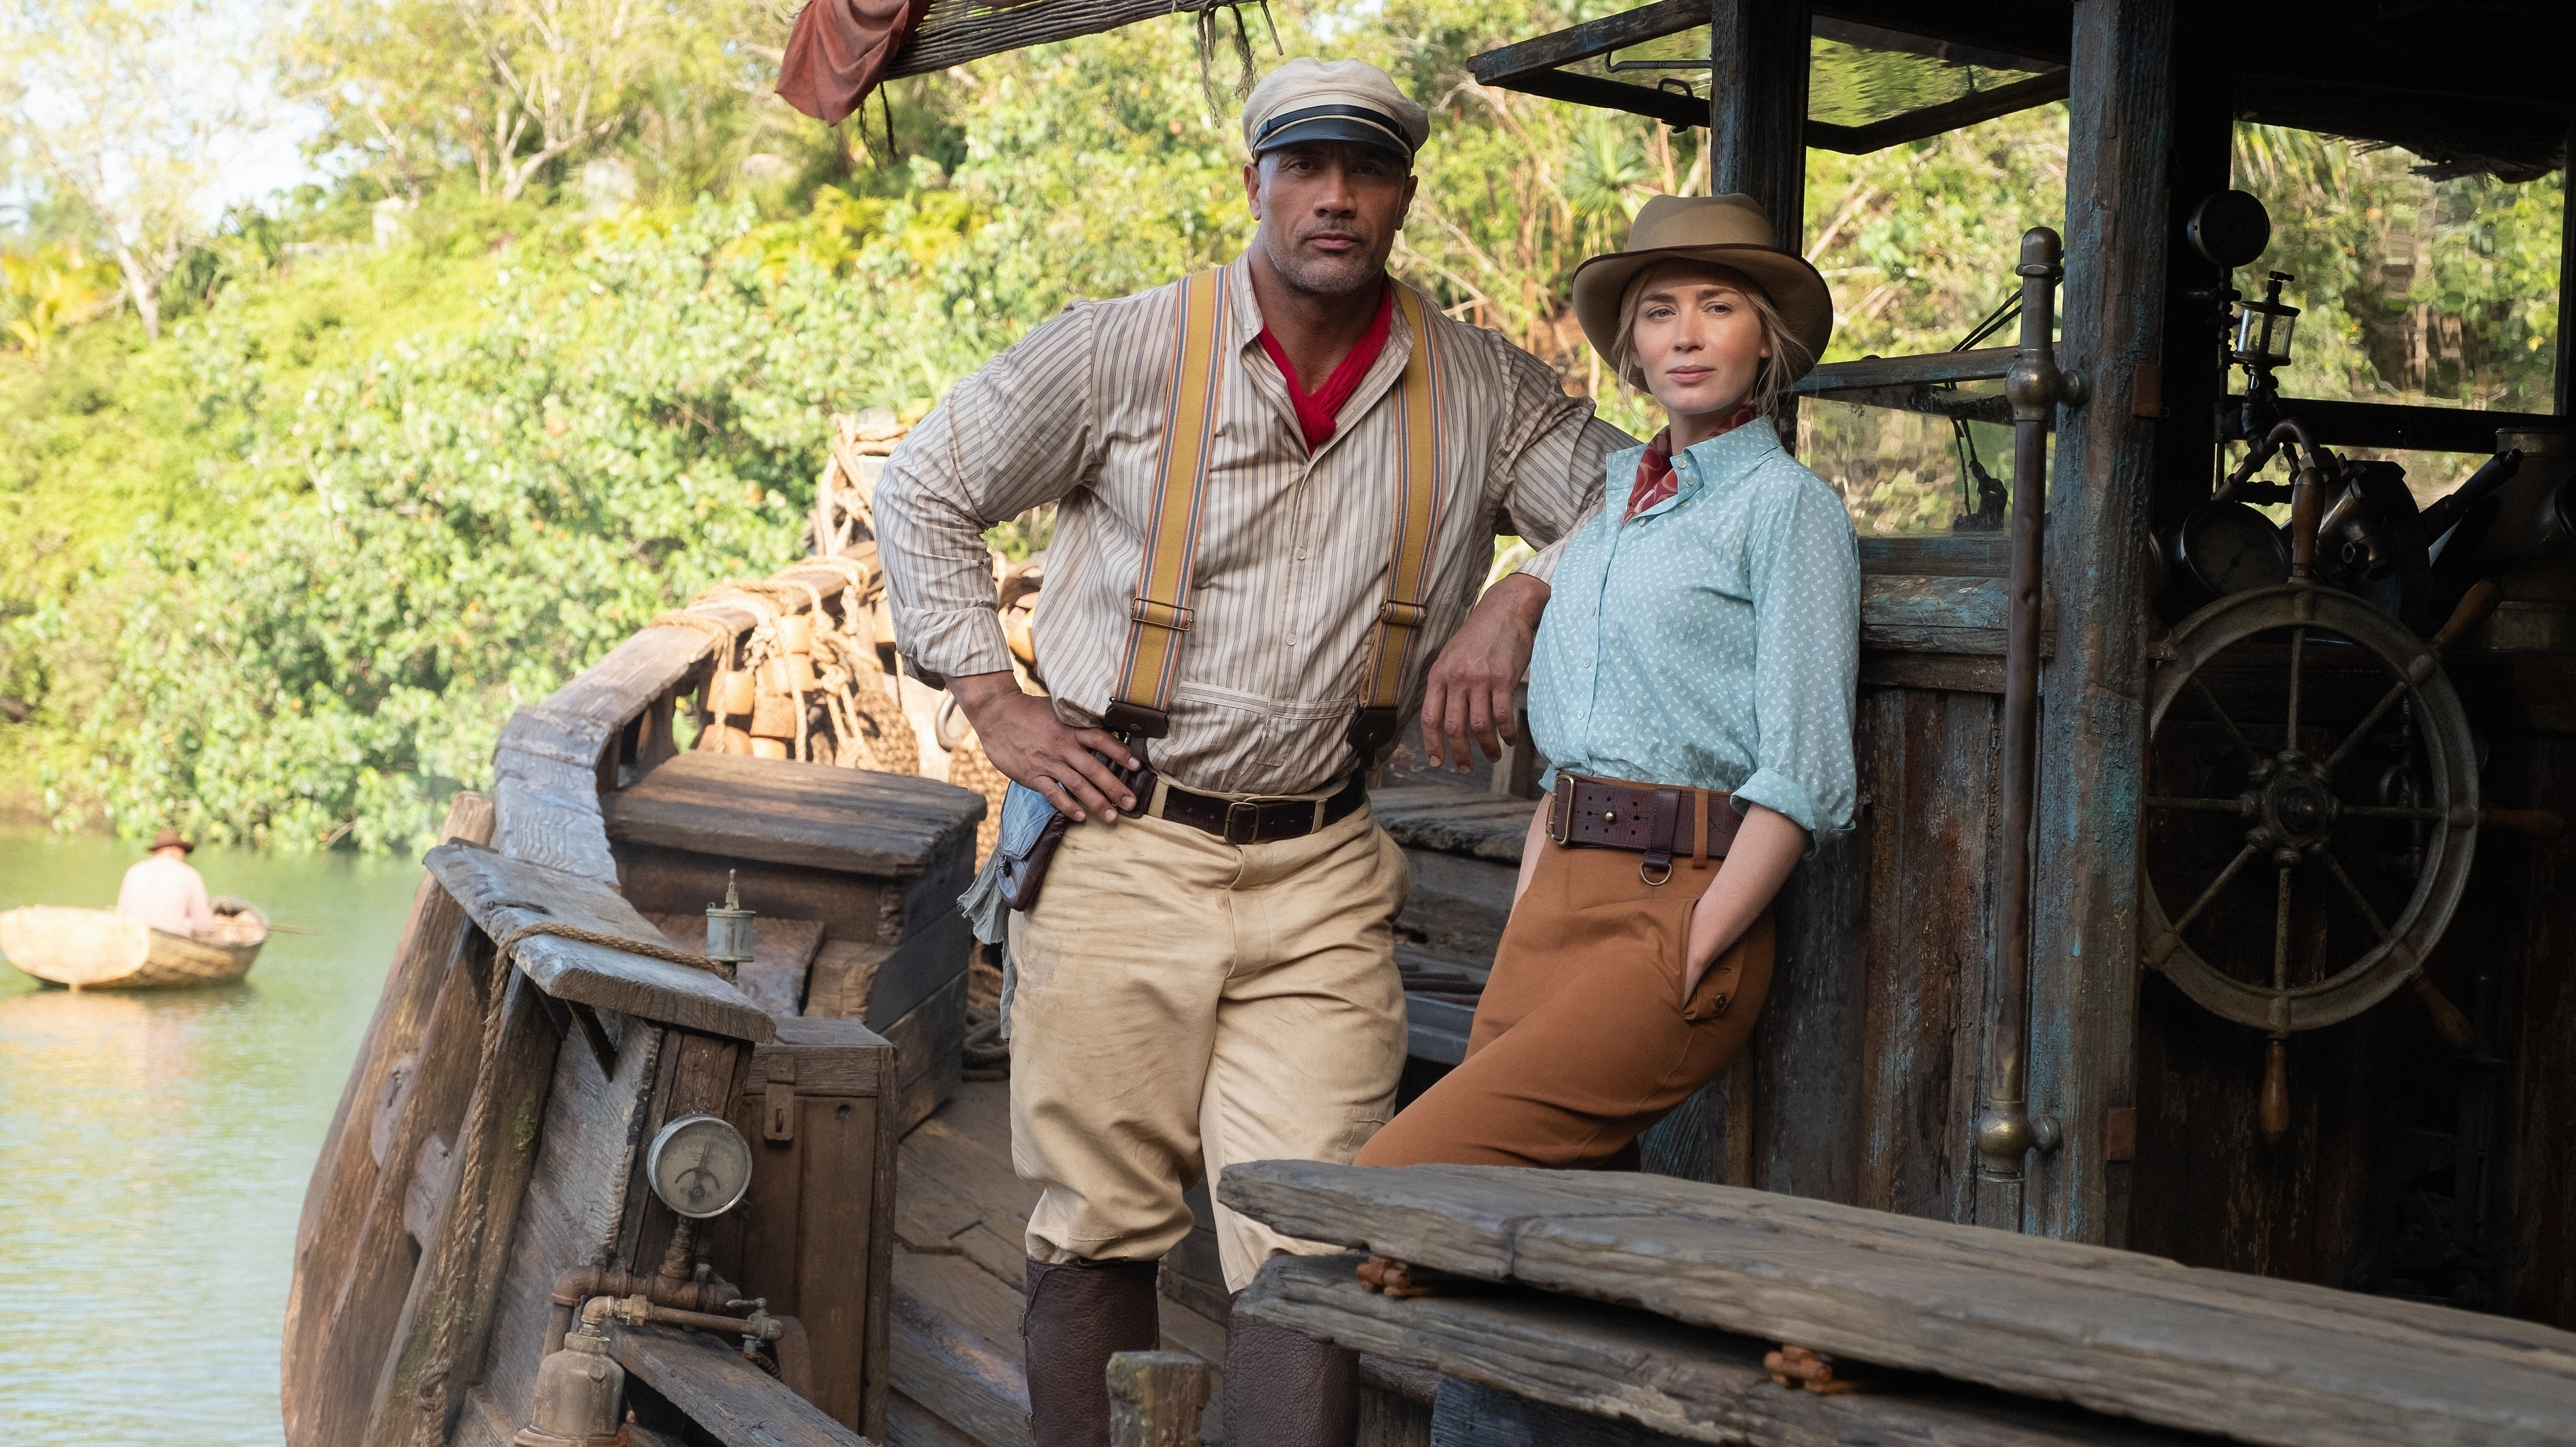 Interviews on the Set of Disney's Jungle Cruise With the Cast and Crew